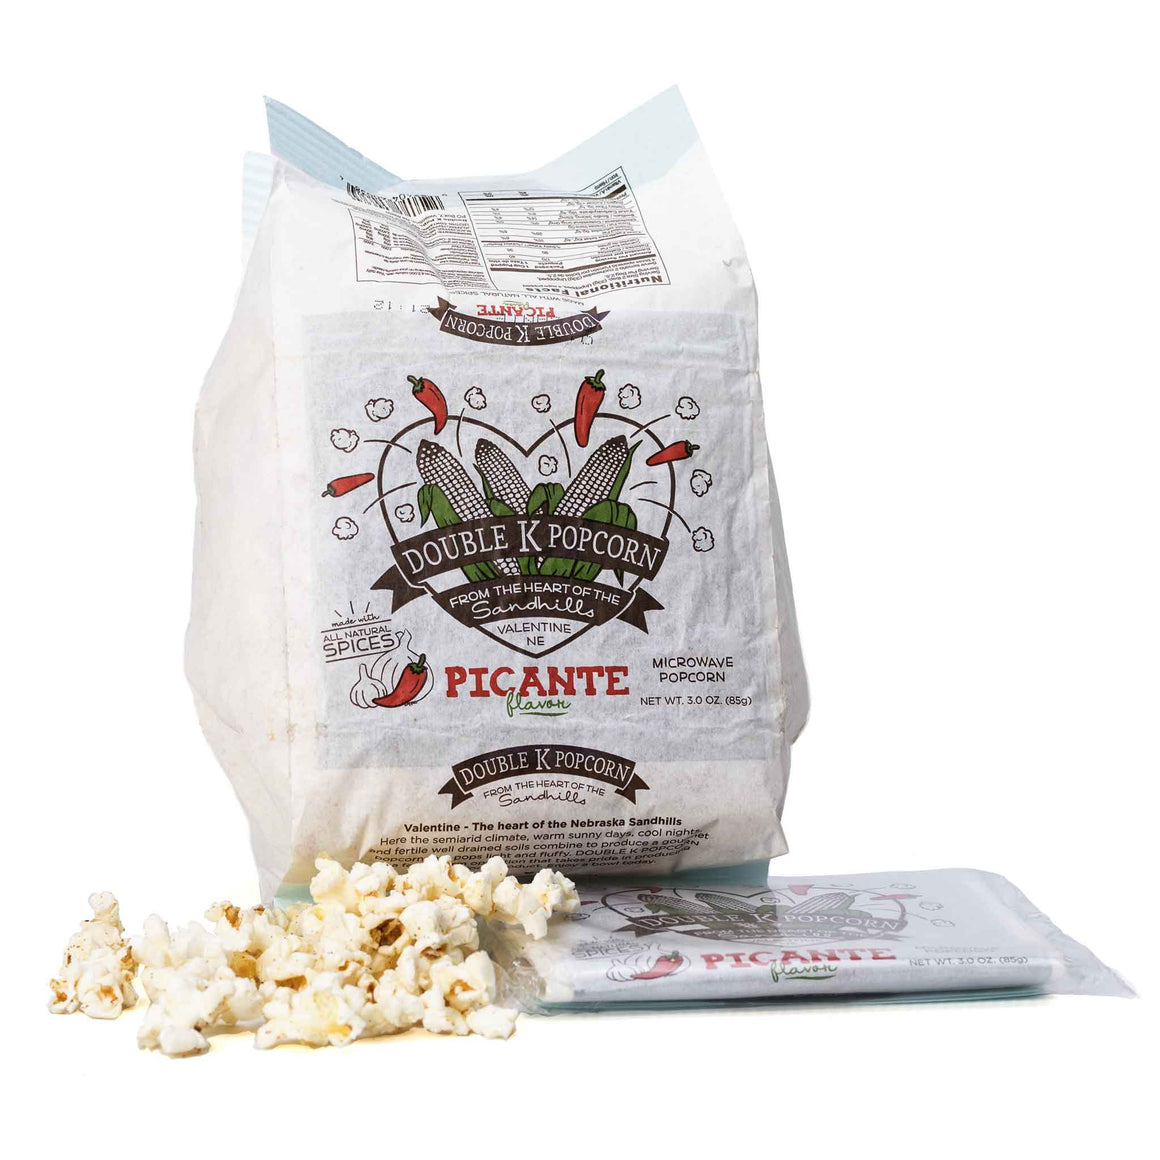 Picante Flavored Microwave Popcorn product image - included with Dr. Don's Care Packages College Student Care Package.